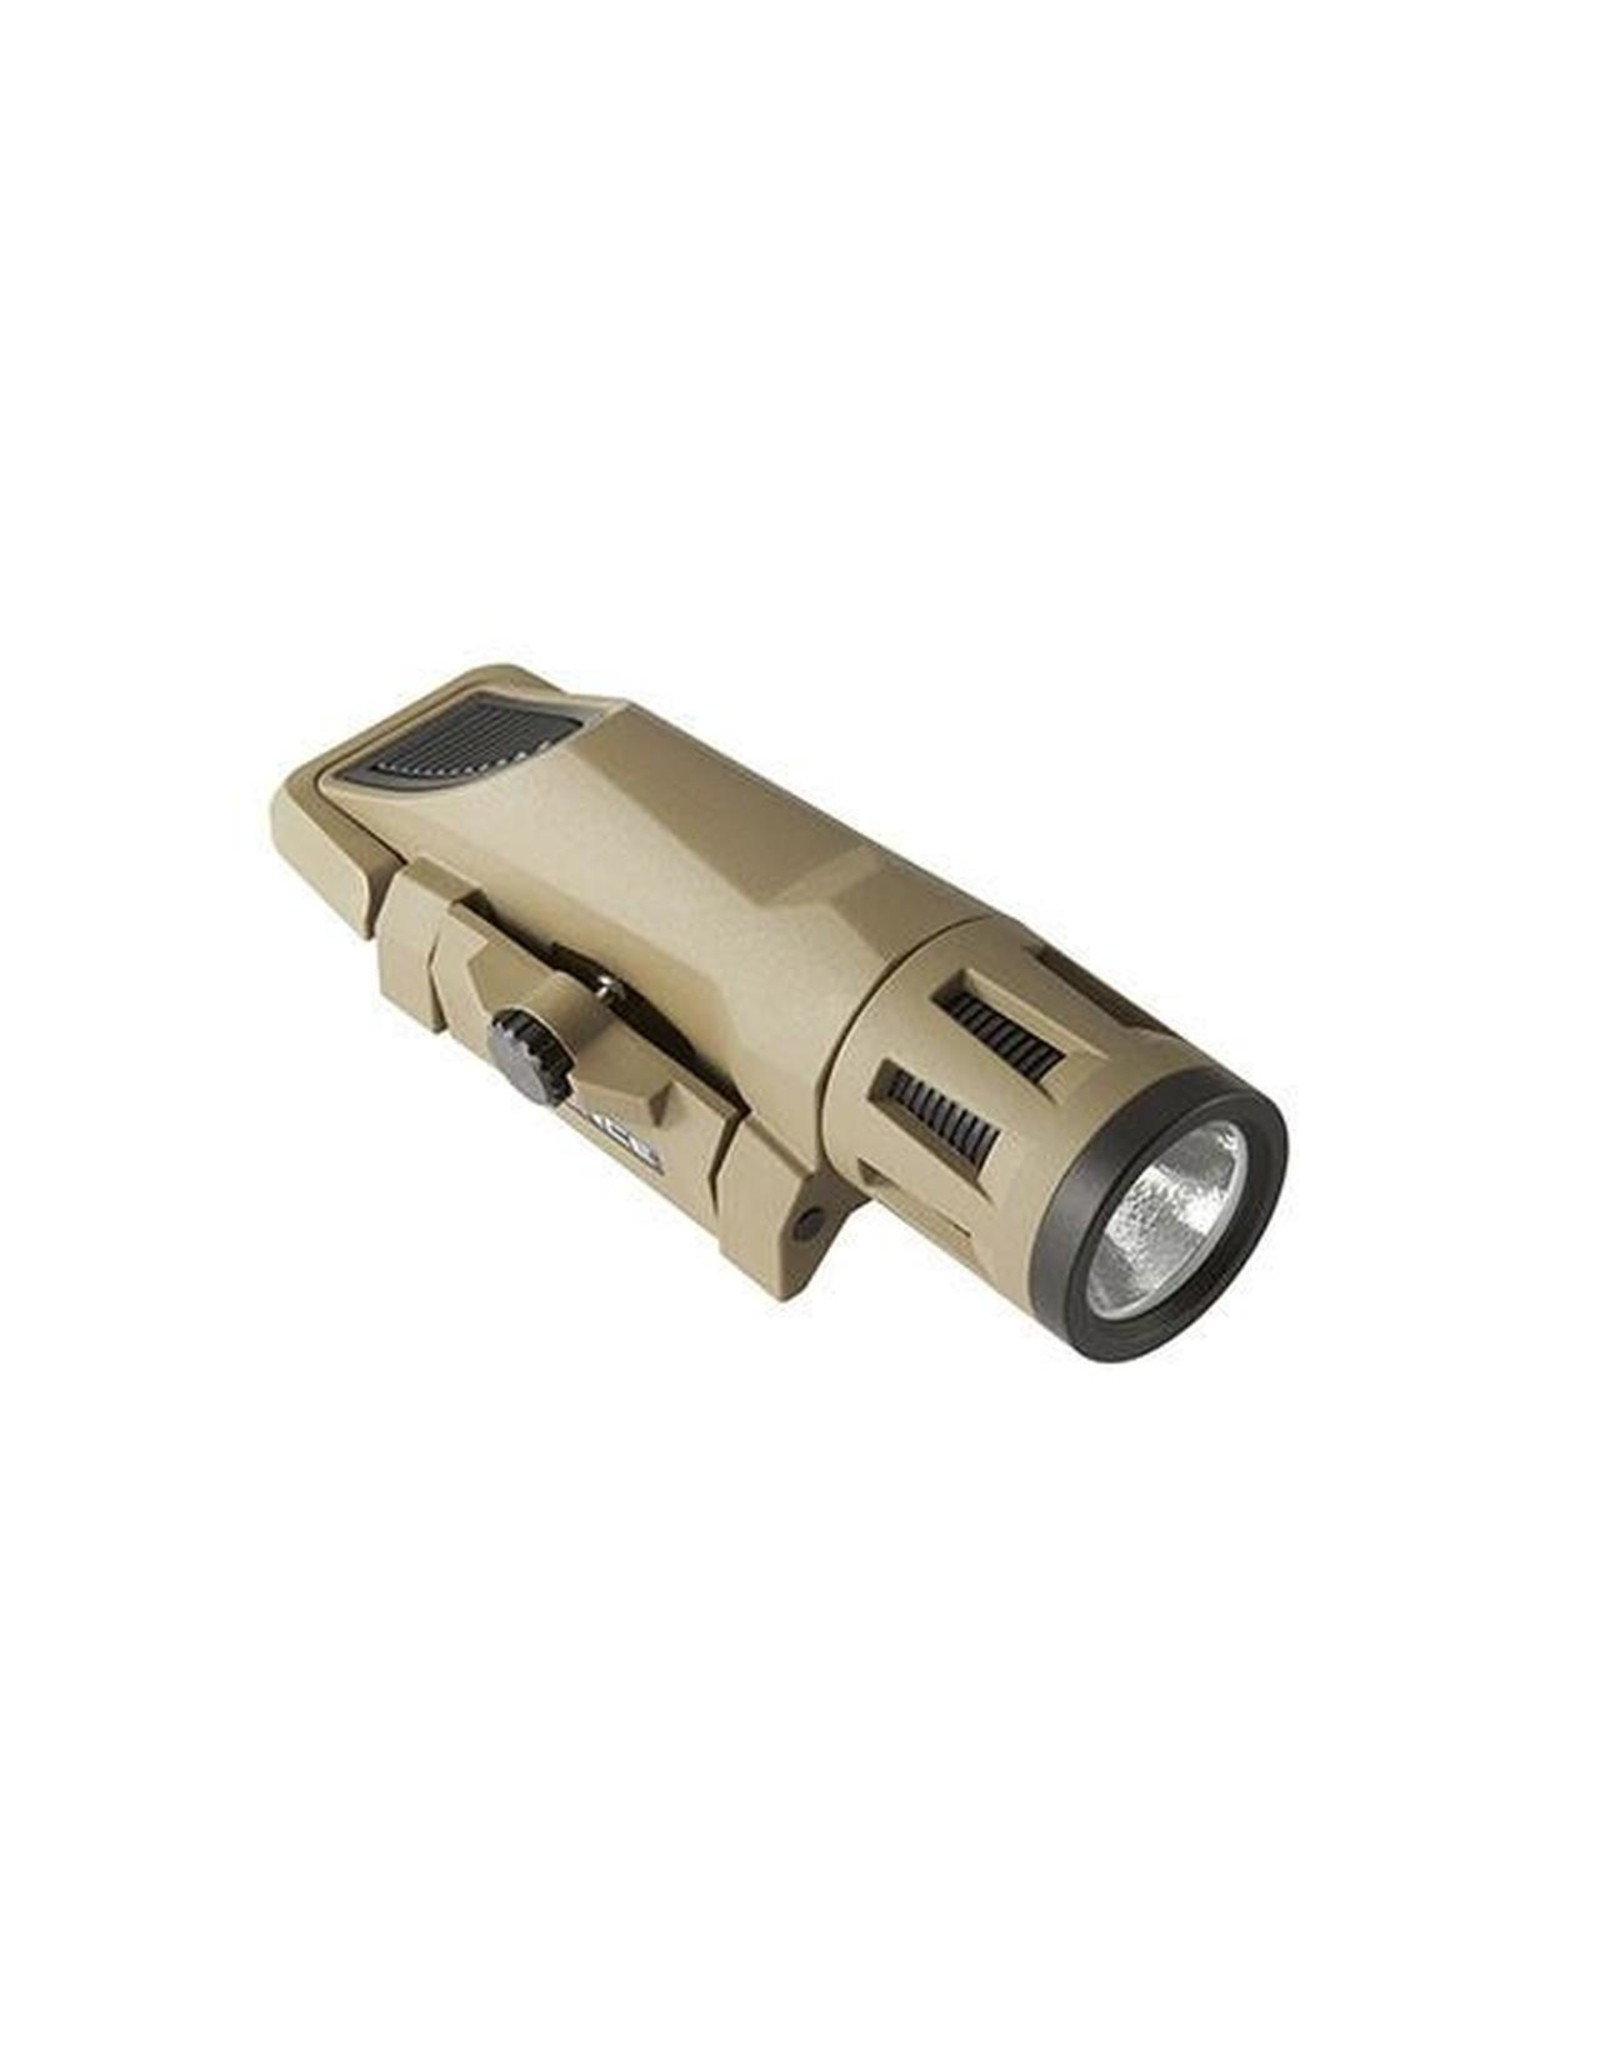 INFORCE INFORCE GEN 2 WML WHITE WEAPON MOUNTED LIGHT